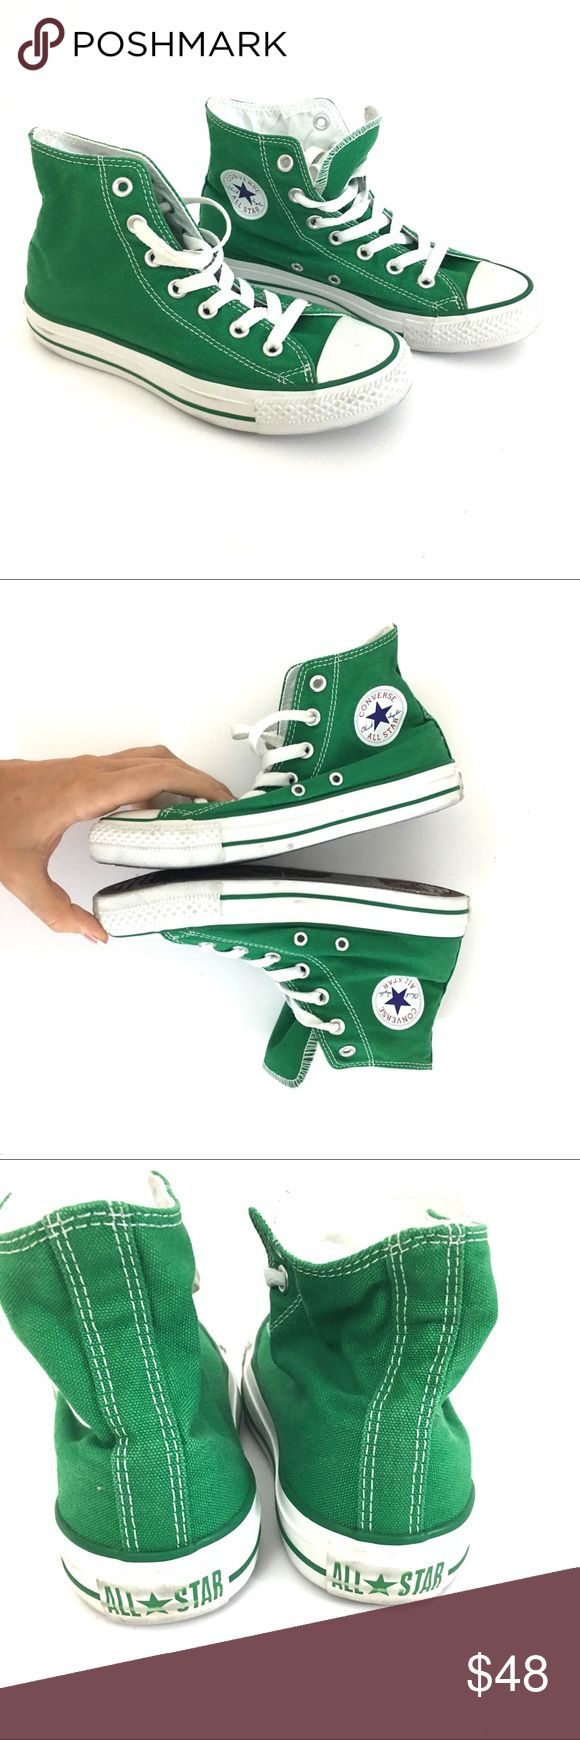 High top Green converse Green converse high tops  Unisex. Men's 4 women's 6. Worn once. Light scuffing and marks to the white rubber parts and light wear to the sole.  🌹no trades 🌹discounts on bundles of 2+  🌹1000 items listed, take a peak!  🌹suggested user, posh compliant:)  bbbo Converse Shoes Sneakers